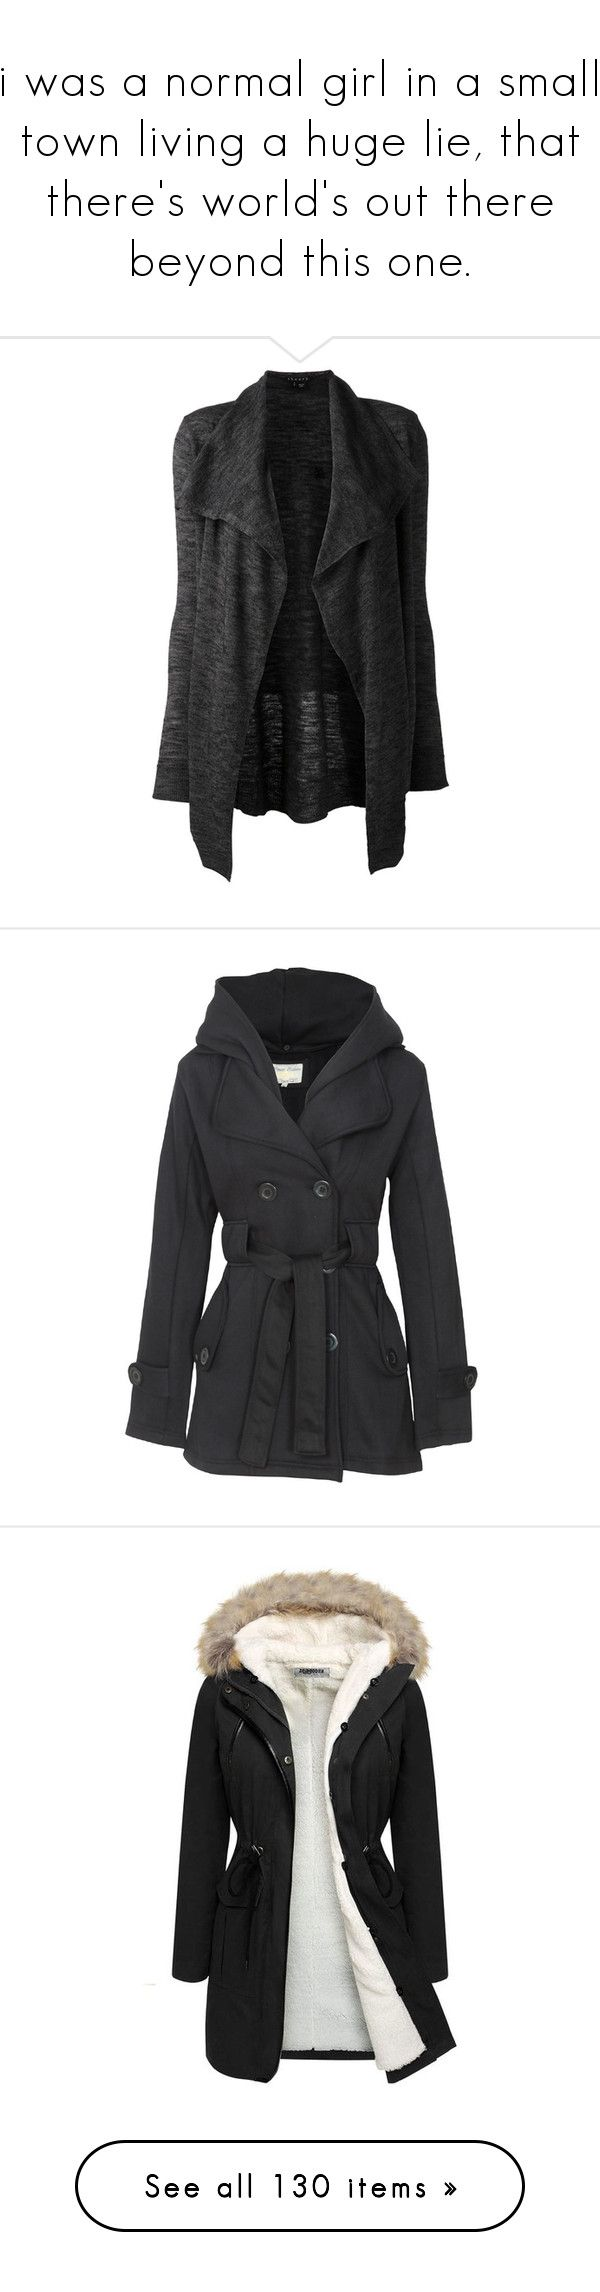 """""""i was a normal girl in a small town living a huge lie, that there's world's out there beyond this one."""" by demiwitch-of-mischief ❤ liked on Polyvore featuring tops, cardigans, jackets, outerwear, sweaters, charcoal, long cardigan, shawl collar open front cardigan, draped cardigan and open front tops"""